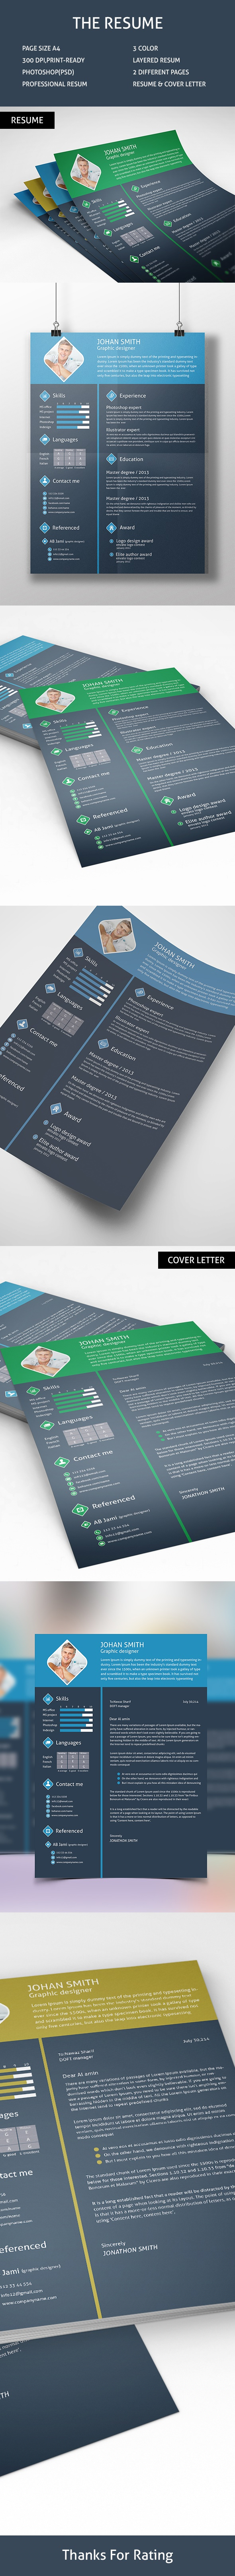 Free Resume PSD Download